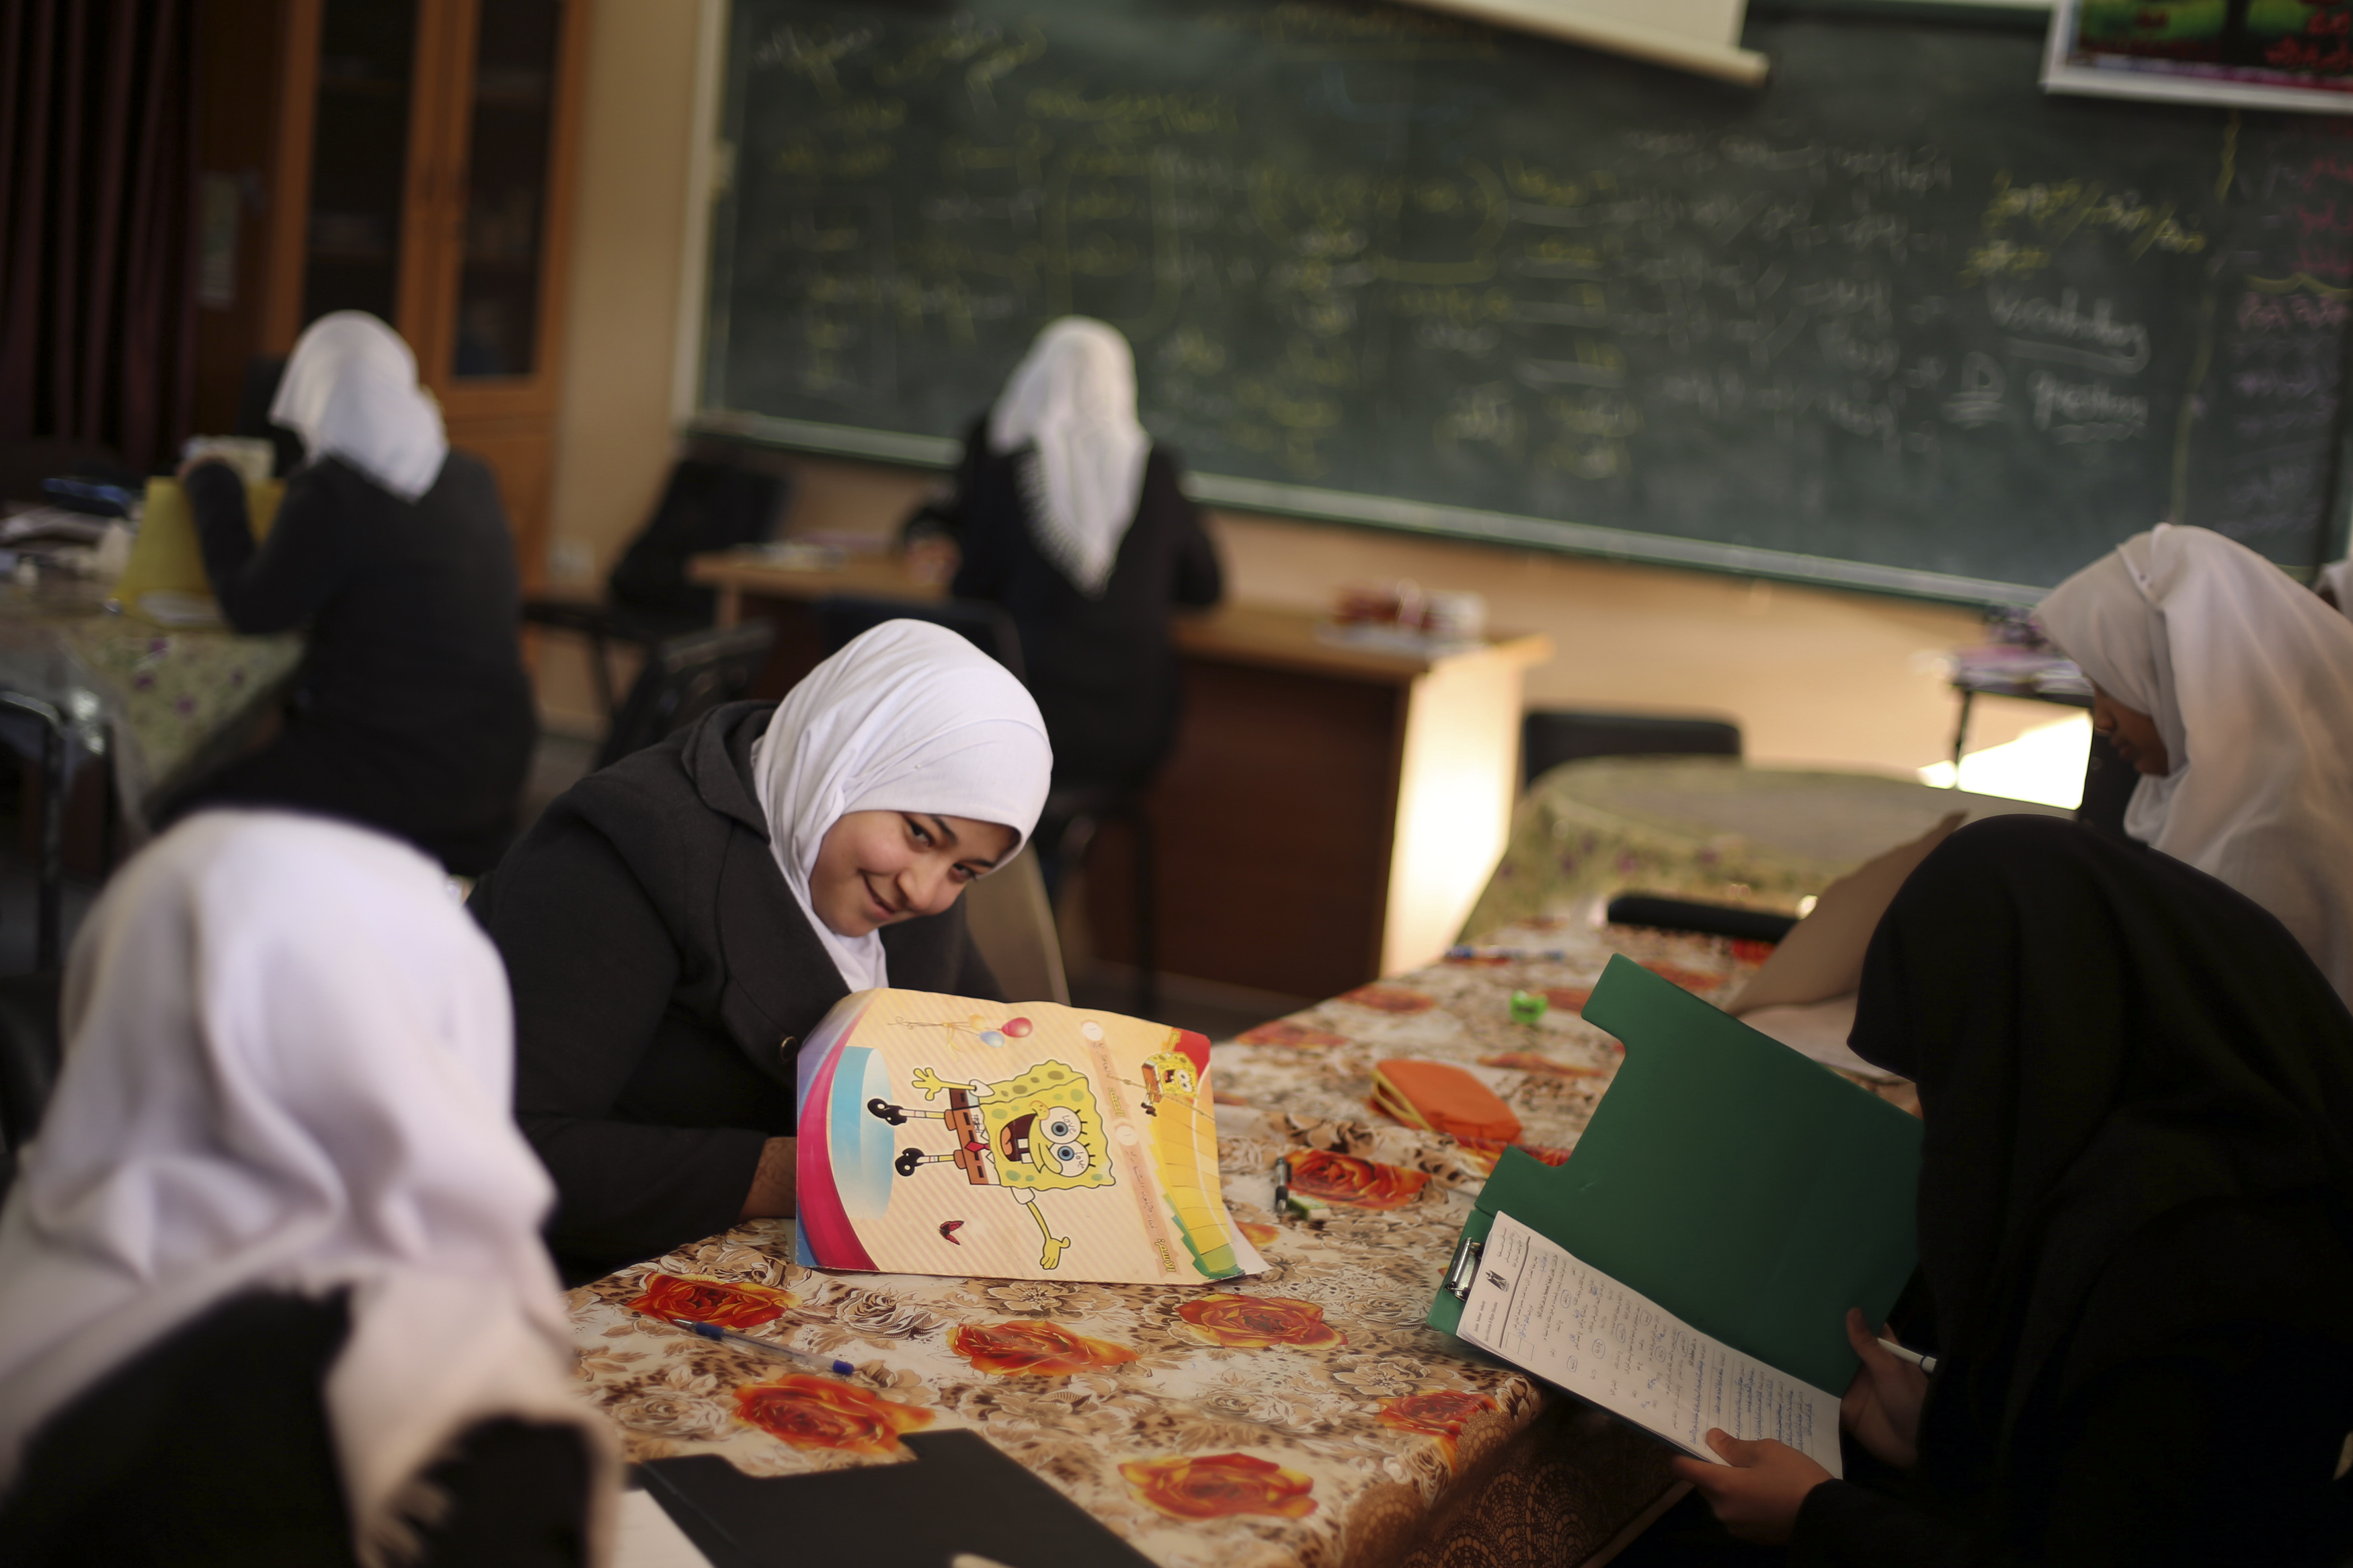 Palestinian girl Manar Al-Shinbari (C), 15, who lost both her legs in what medics said was Israeli shelling at a UN-run school where she was taking refuge during the 50-day war last summer, takes an exam at her school, in Jabaliya refugee camp in the northern Gaza Strip January 13, 2015. Manar's mother and three of her brothers were killed in the same incident. The girl's family house was destroyed by Israeli shelling during the war. REUTERS/Mohammed Salem (GAZA - Tags: POLITICS CIVIL UNREST SOCIETY CONFLICT EDUCATION) - RTR4L8NW